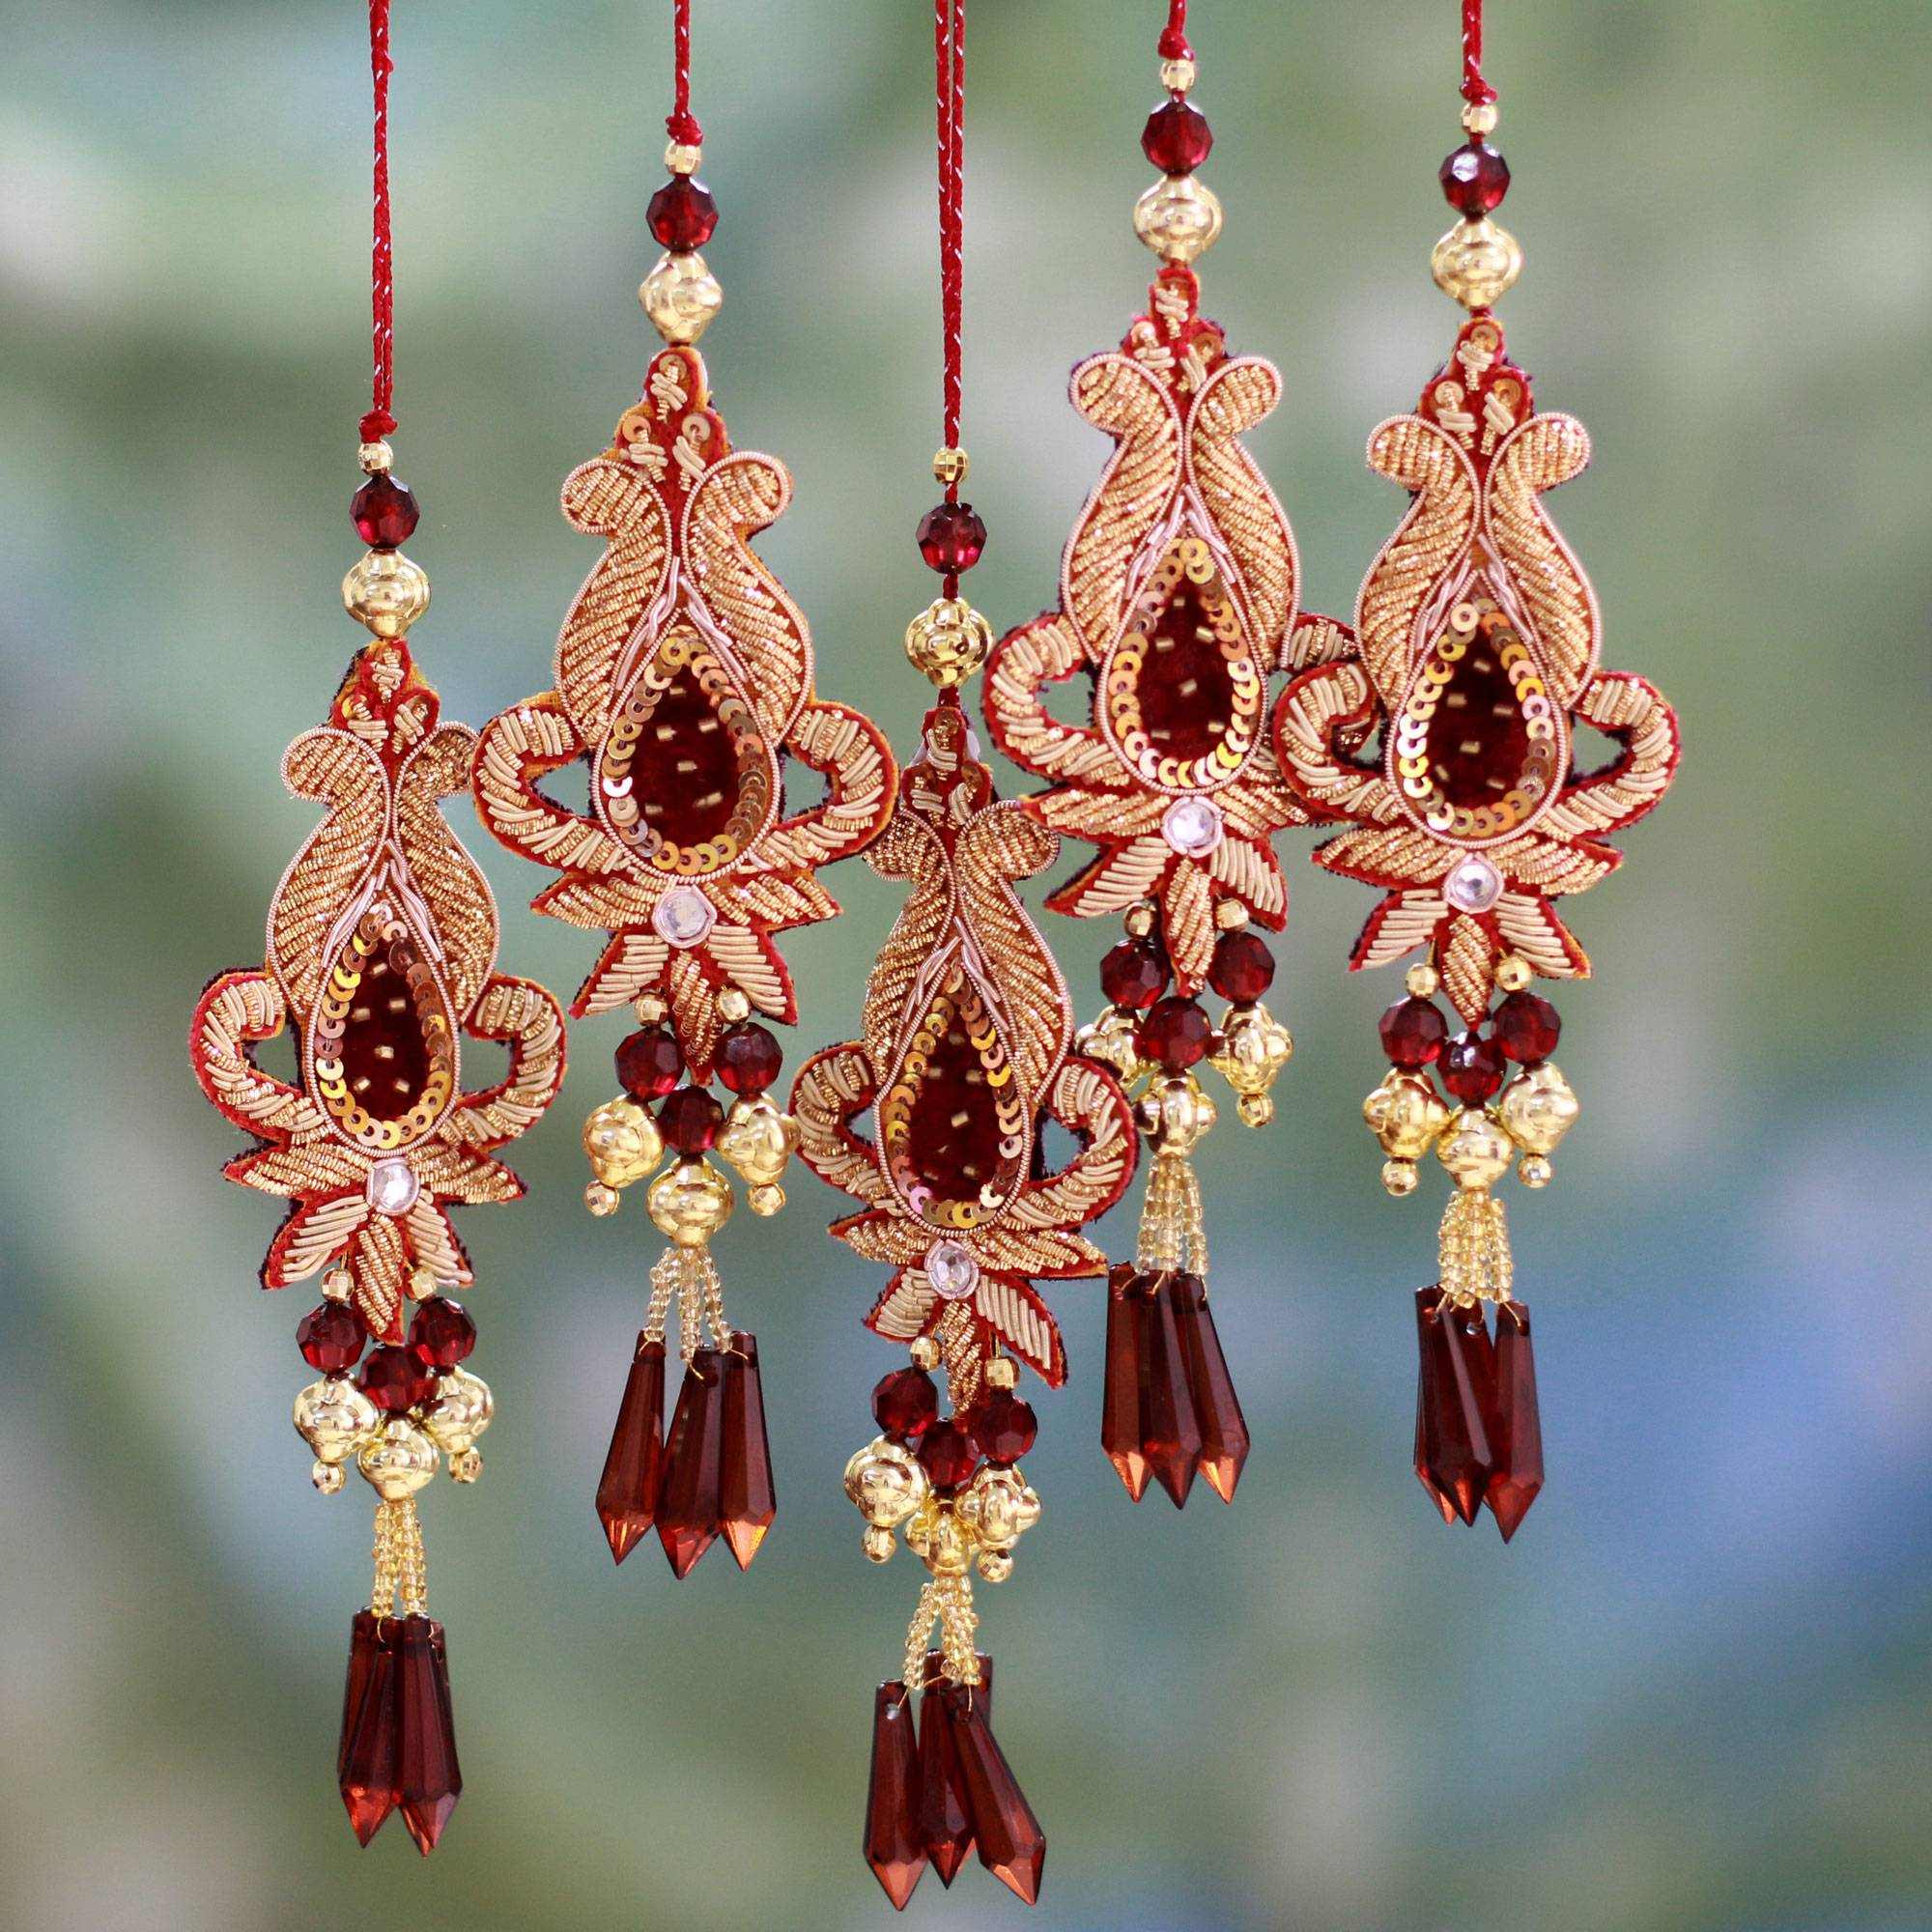 Beaded Christmas Ornaments.Beaded Christmas Ornaments From India Set Of 5 Golden Paisley